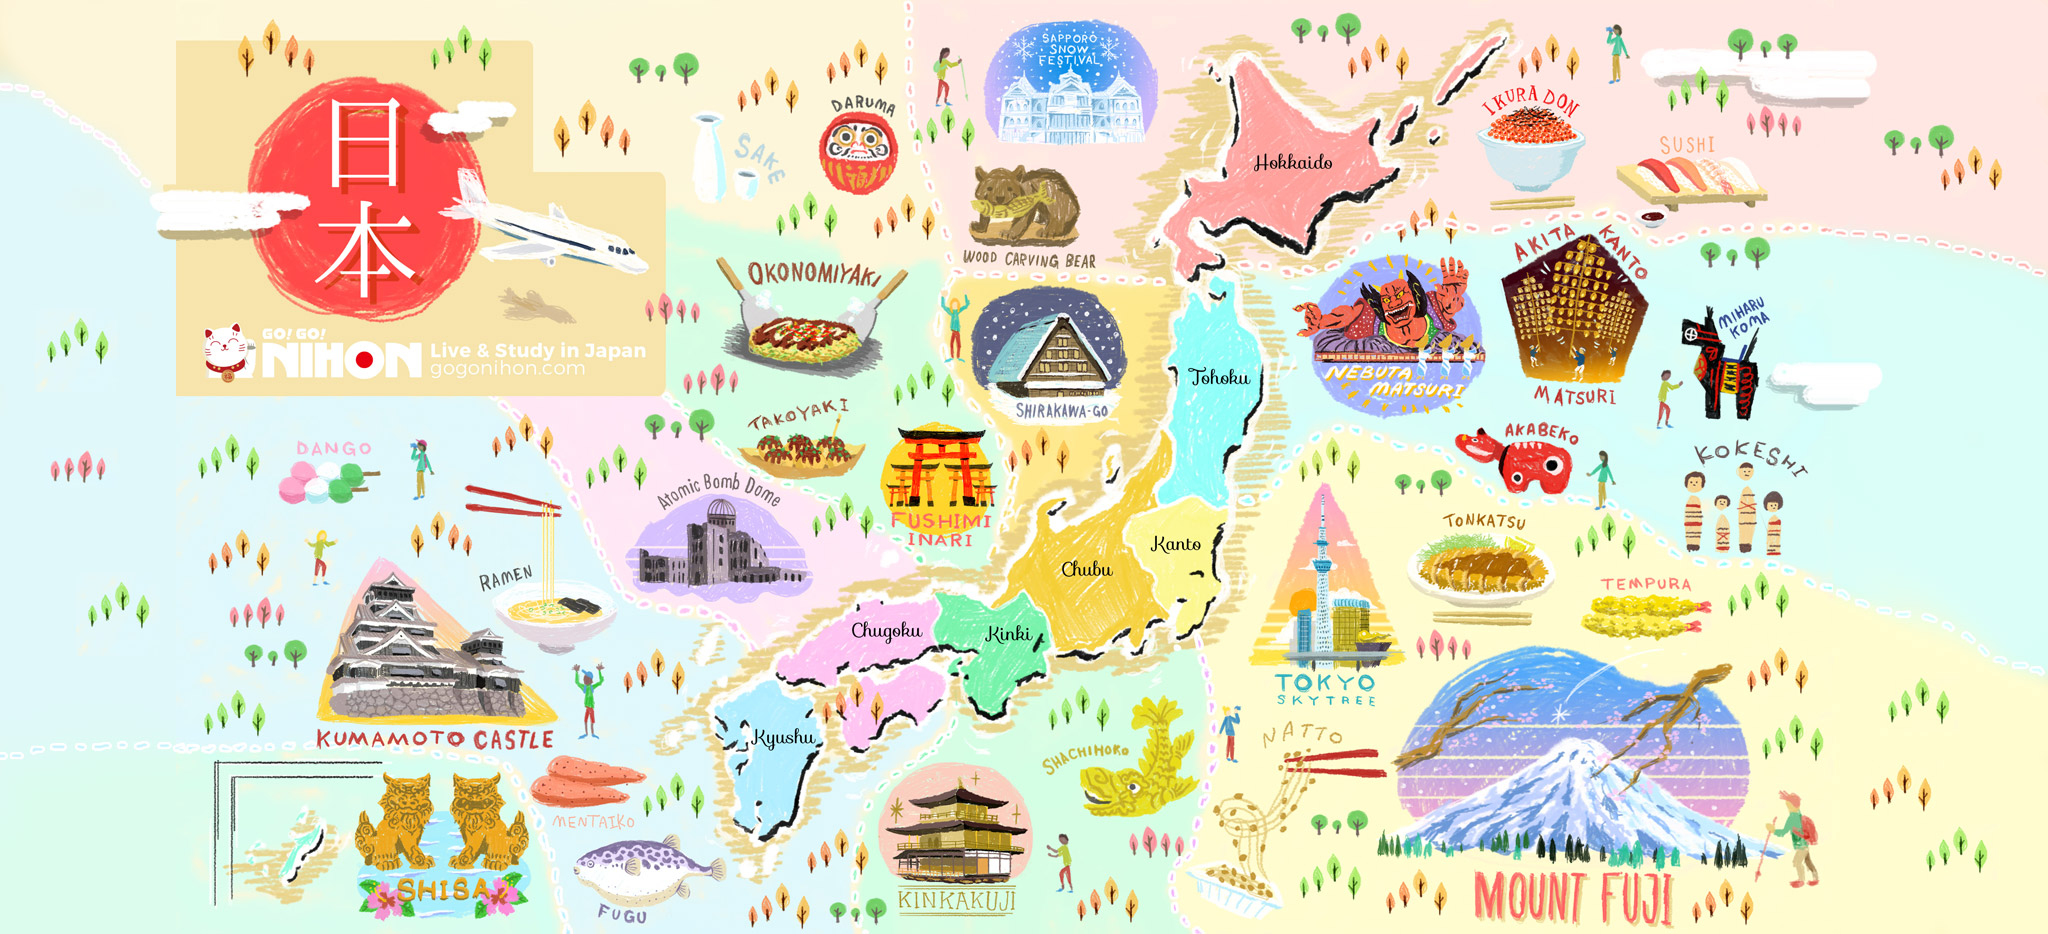 Explore the regions of Japan and see what makes these 8.